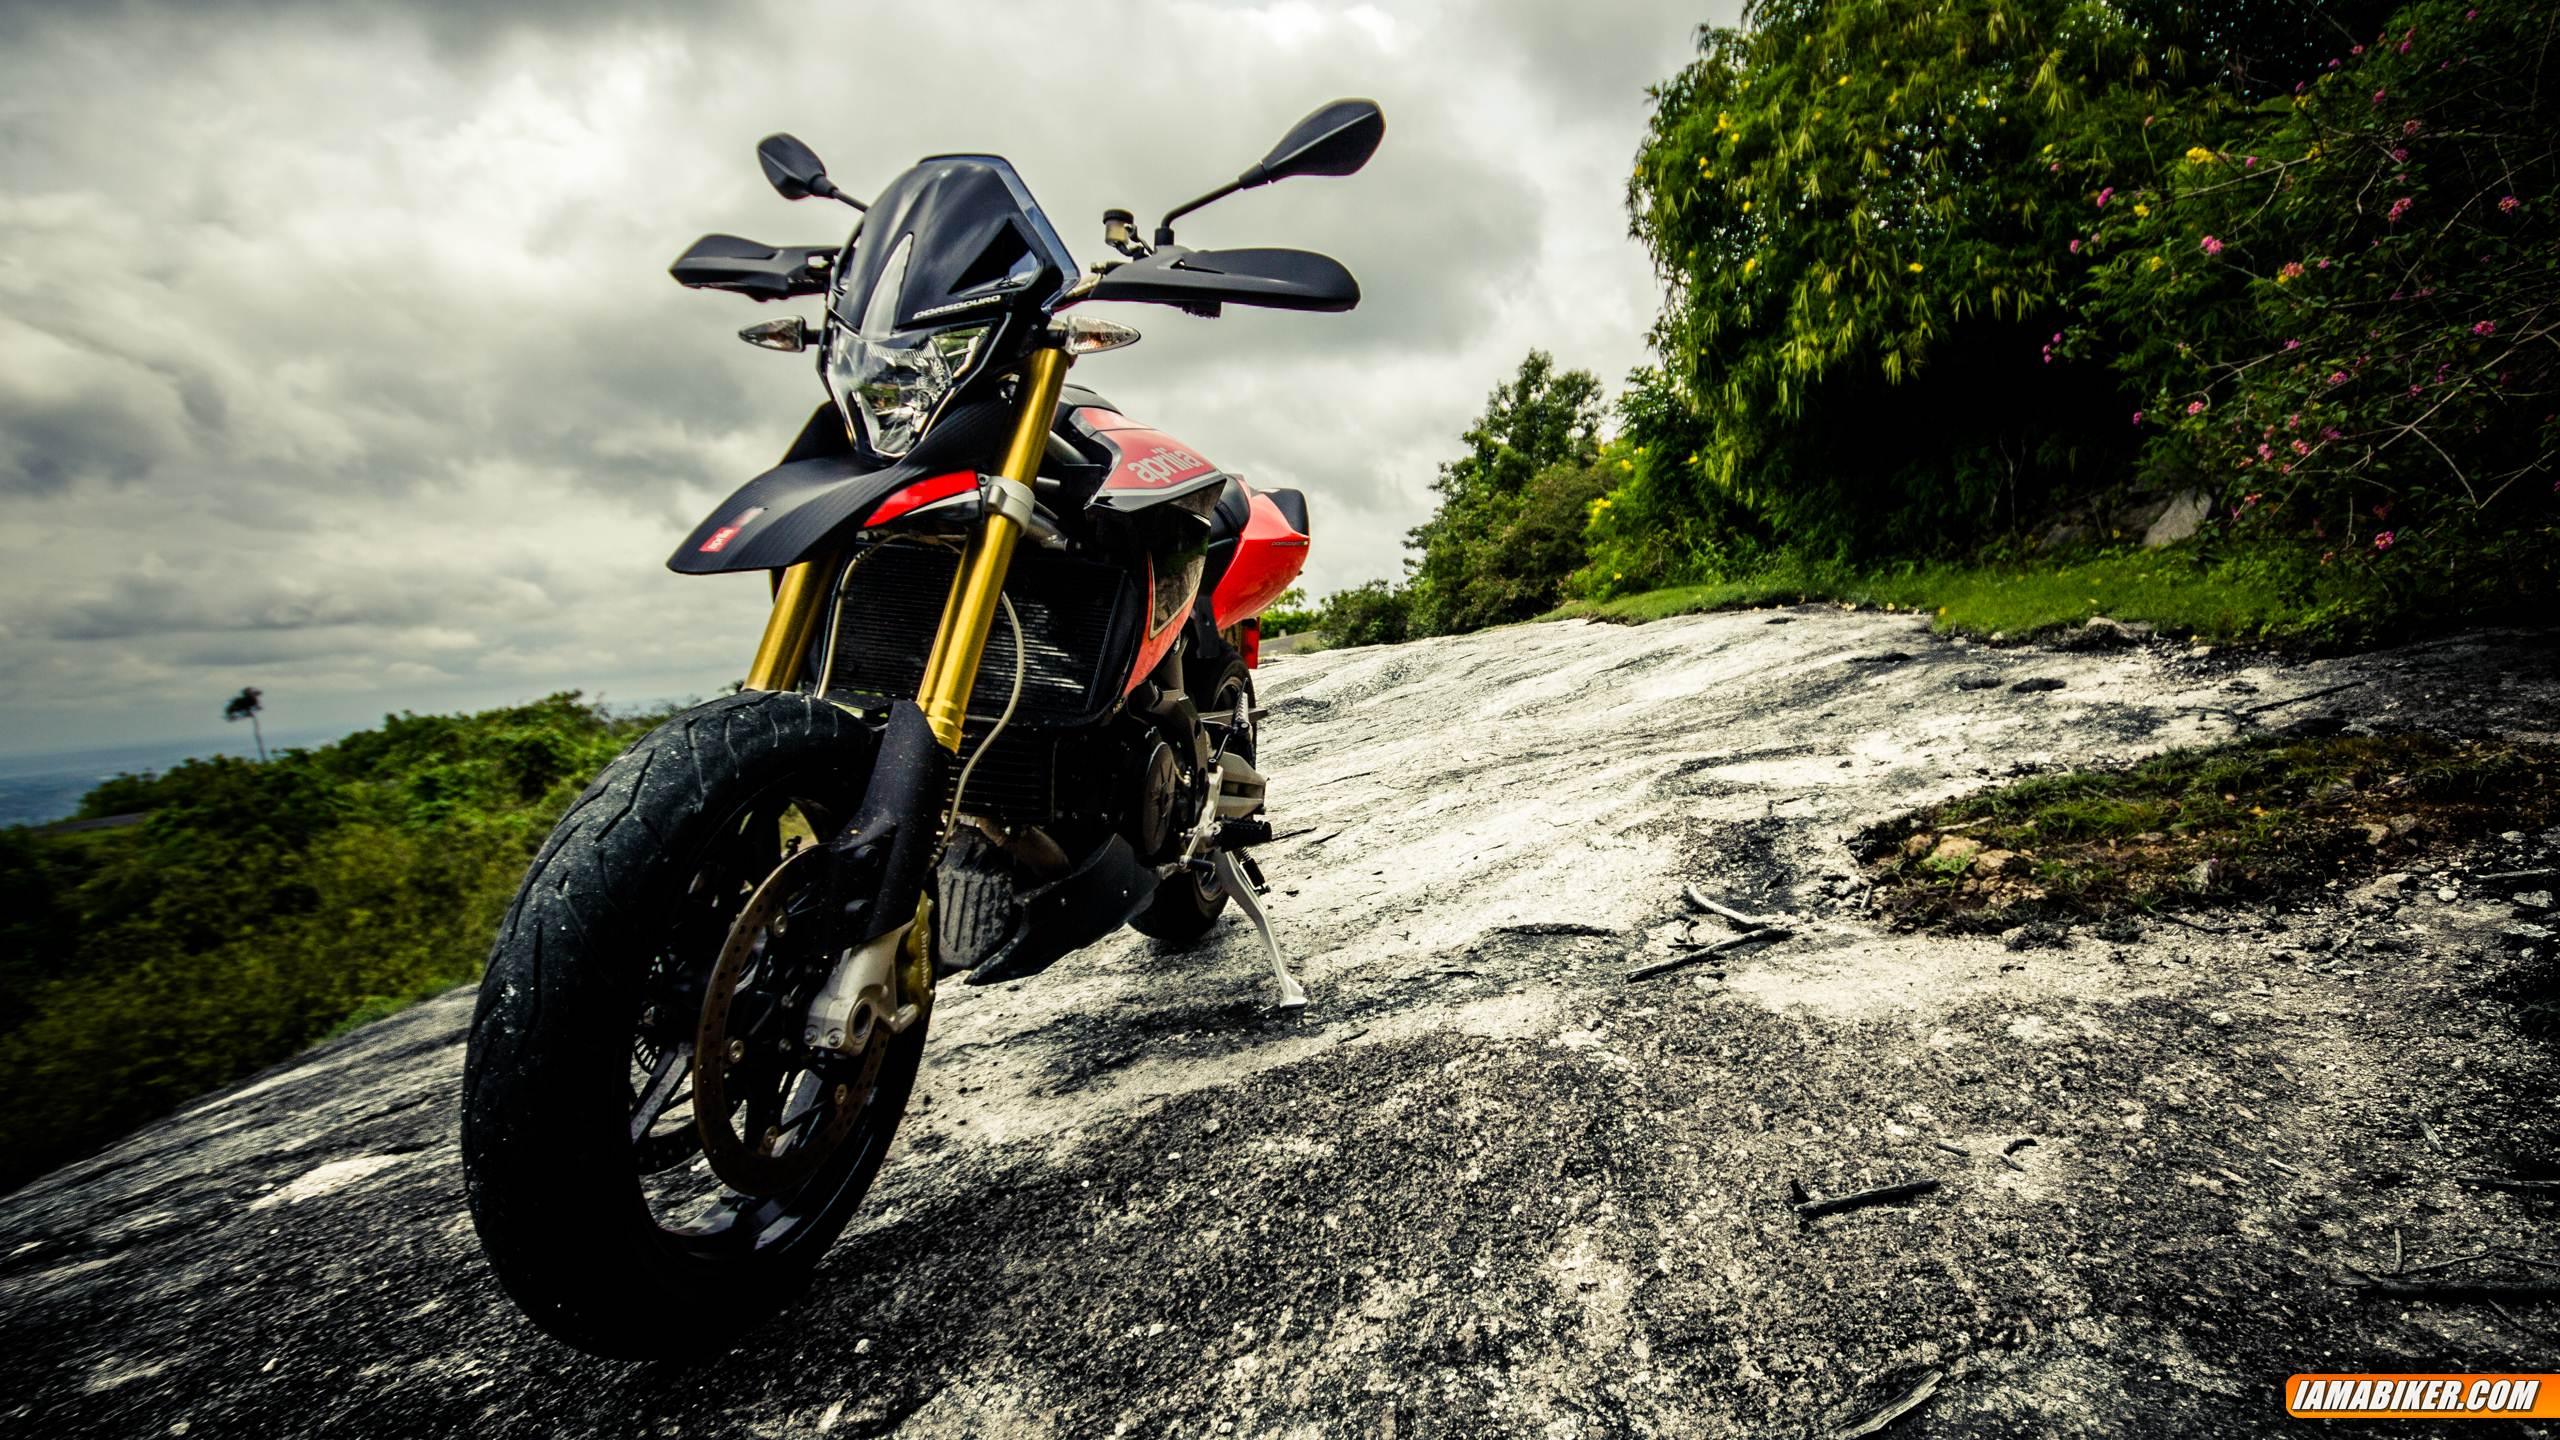 Aprilia Dorsoduro 1200 review